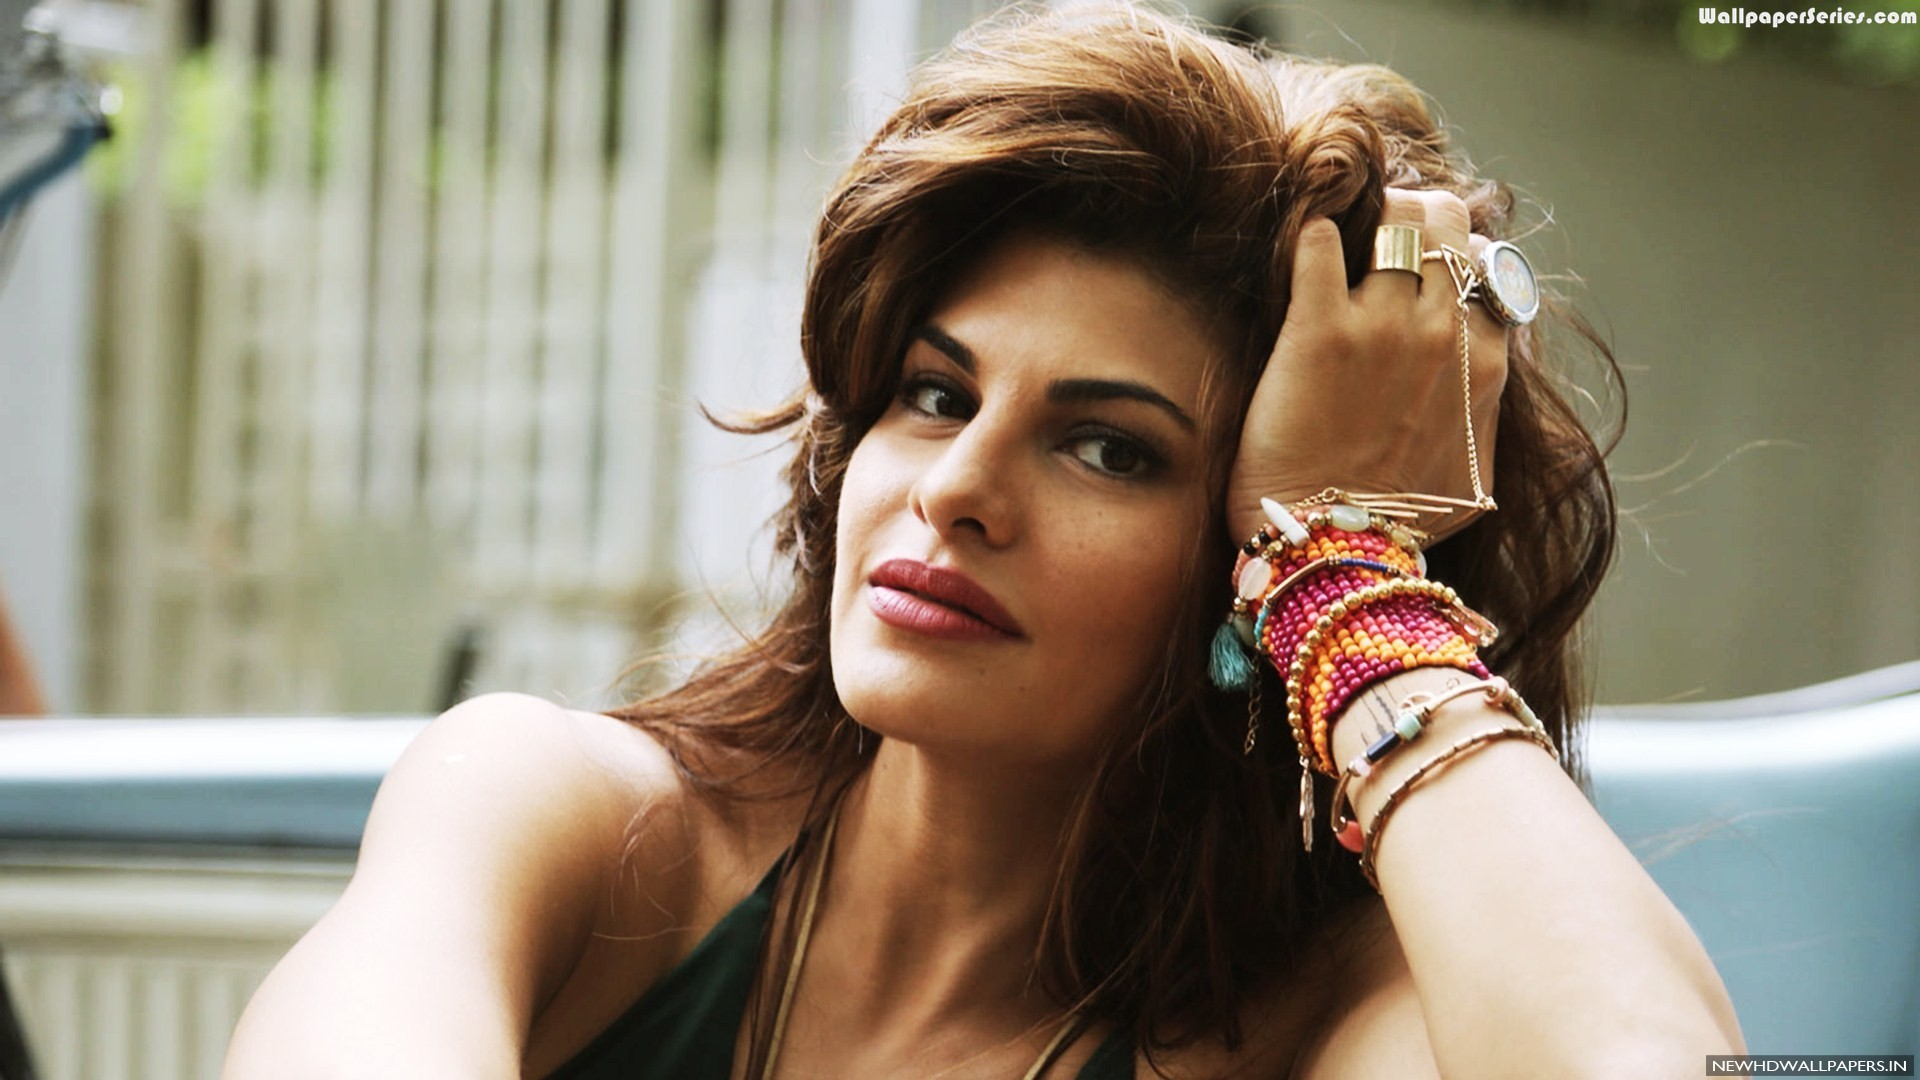 Free Download Full Hd Wallpaper Jacqueline Fernandez: Jacqueline Fernandez Wallpapers High Resolution And